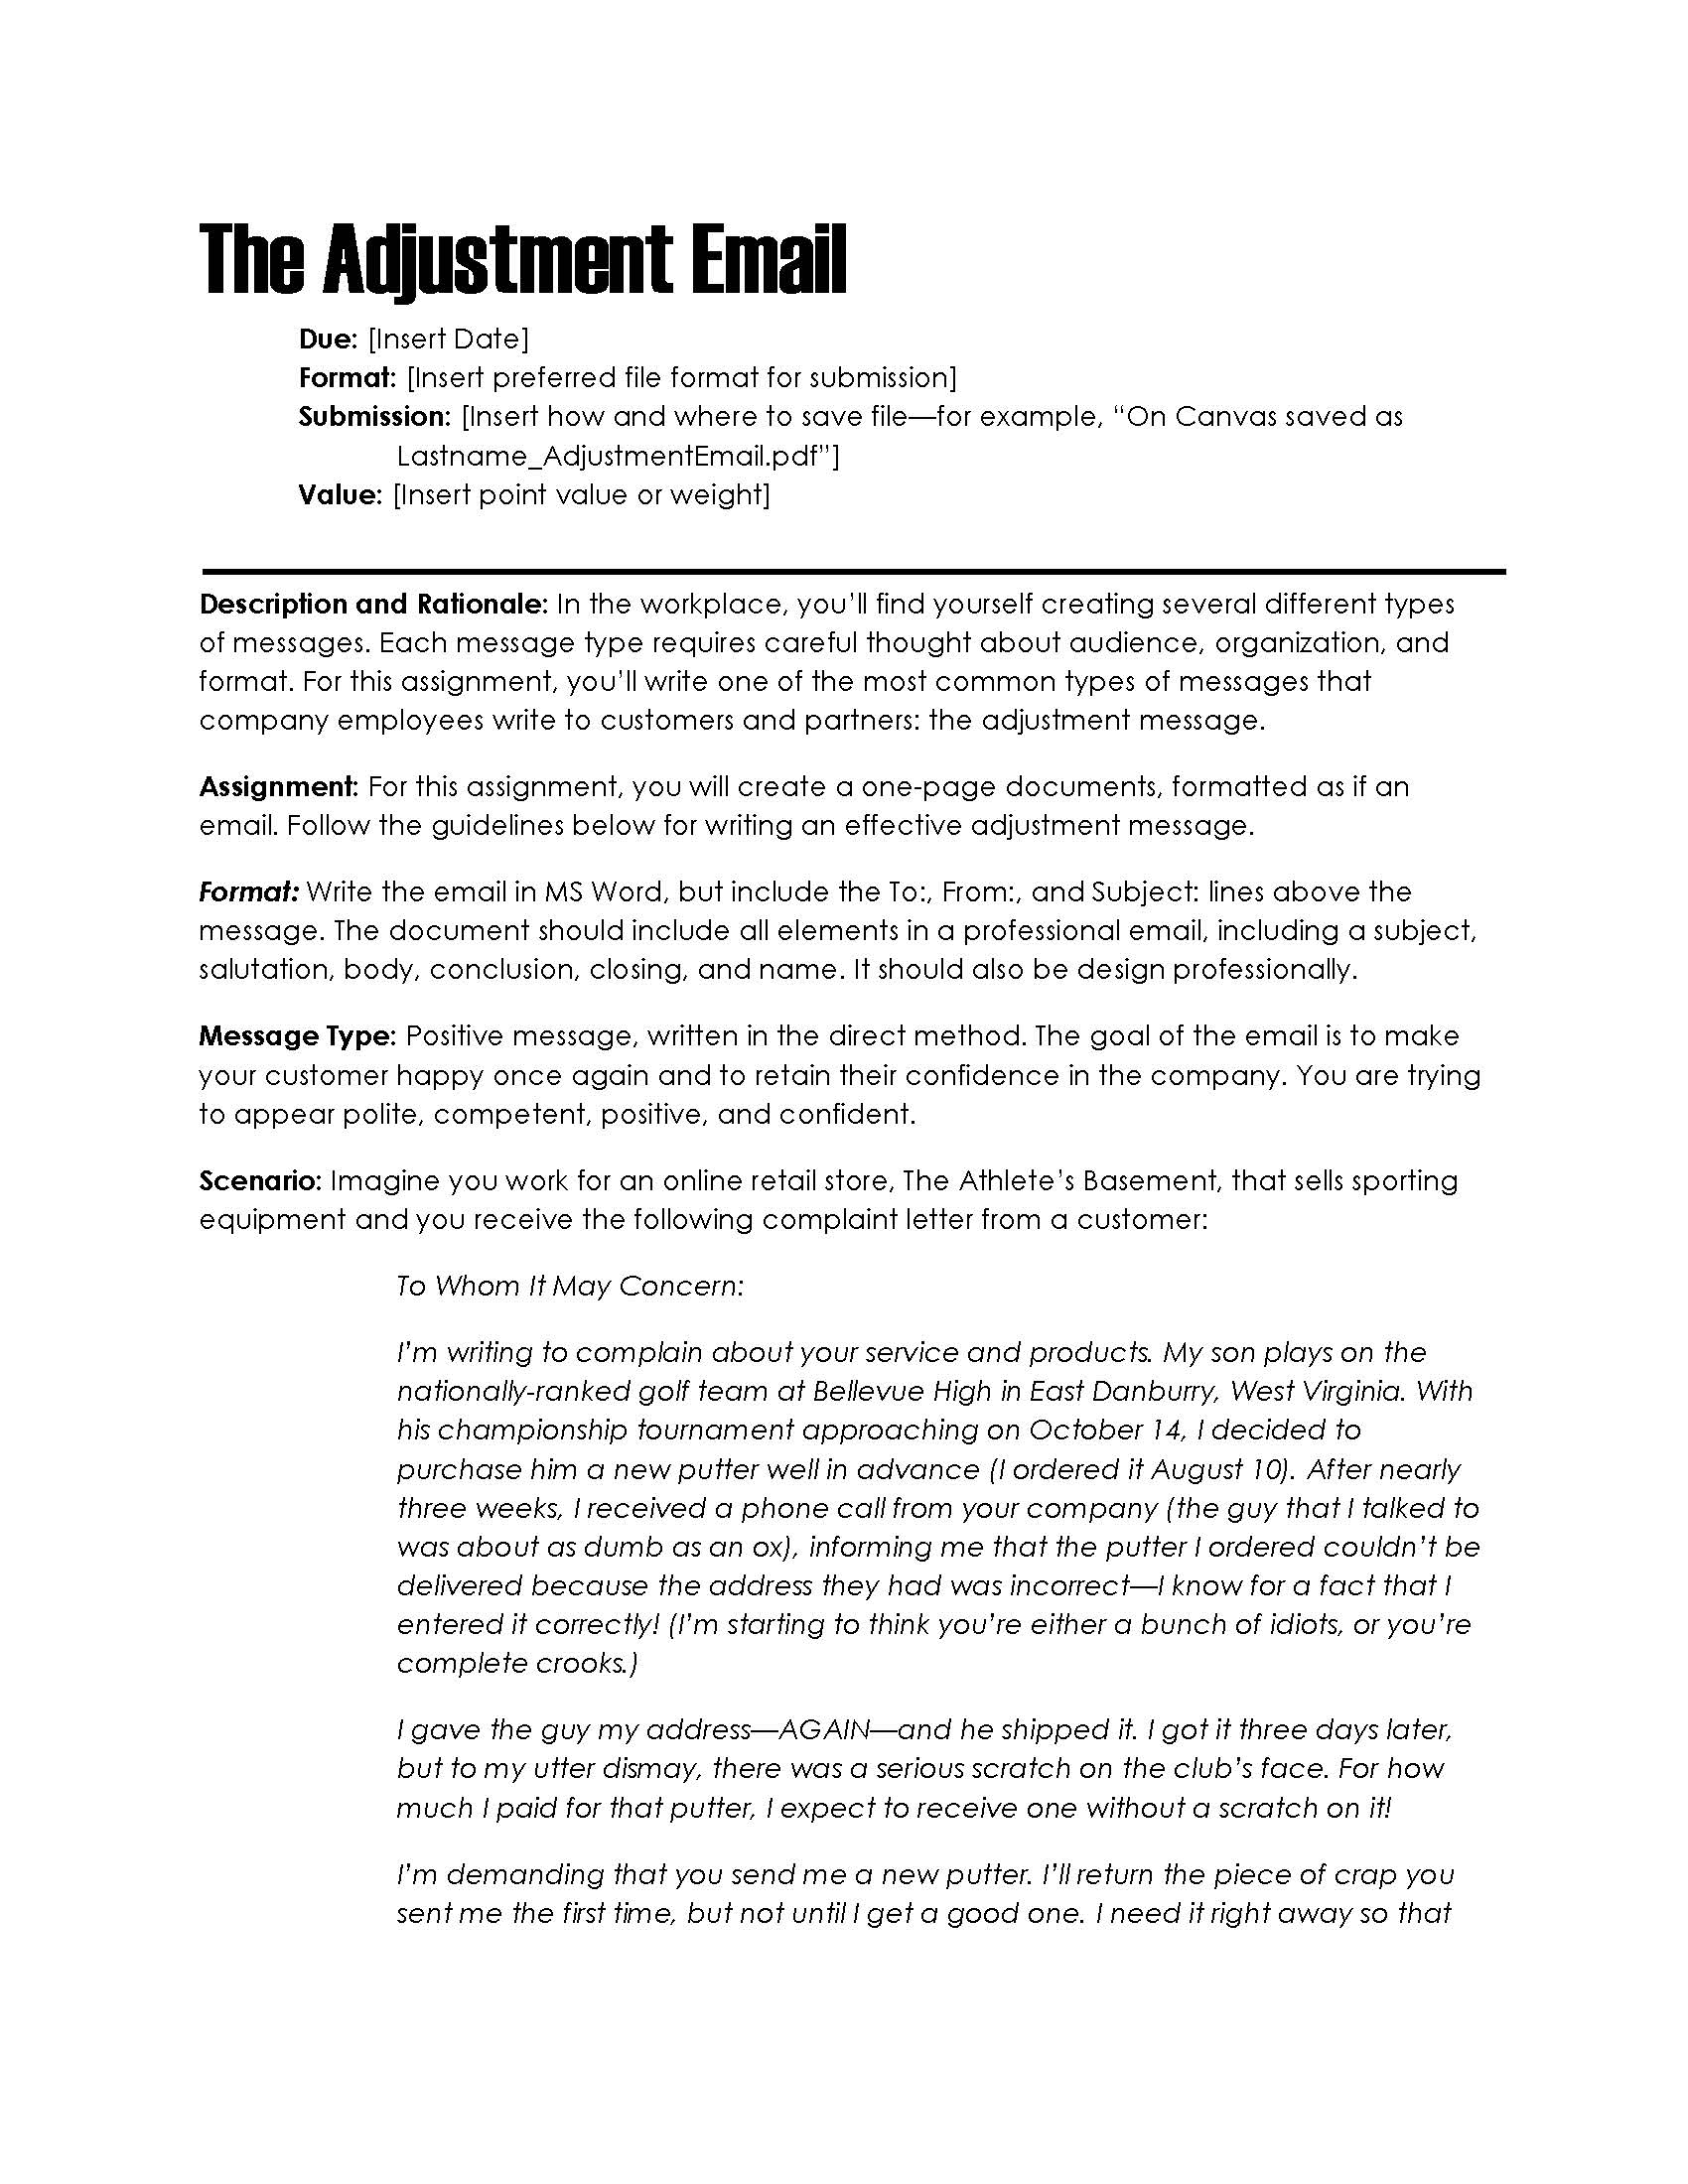 Downloads for teachers assignment descriptions the visual great for business communication courses this assignment helps students learn to write adjustment messages to alleviate upset customers and clients spiritdancerdesigns Image collections